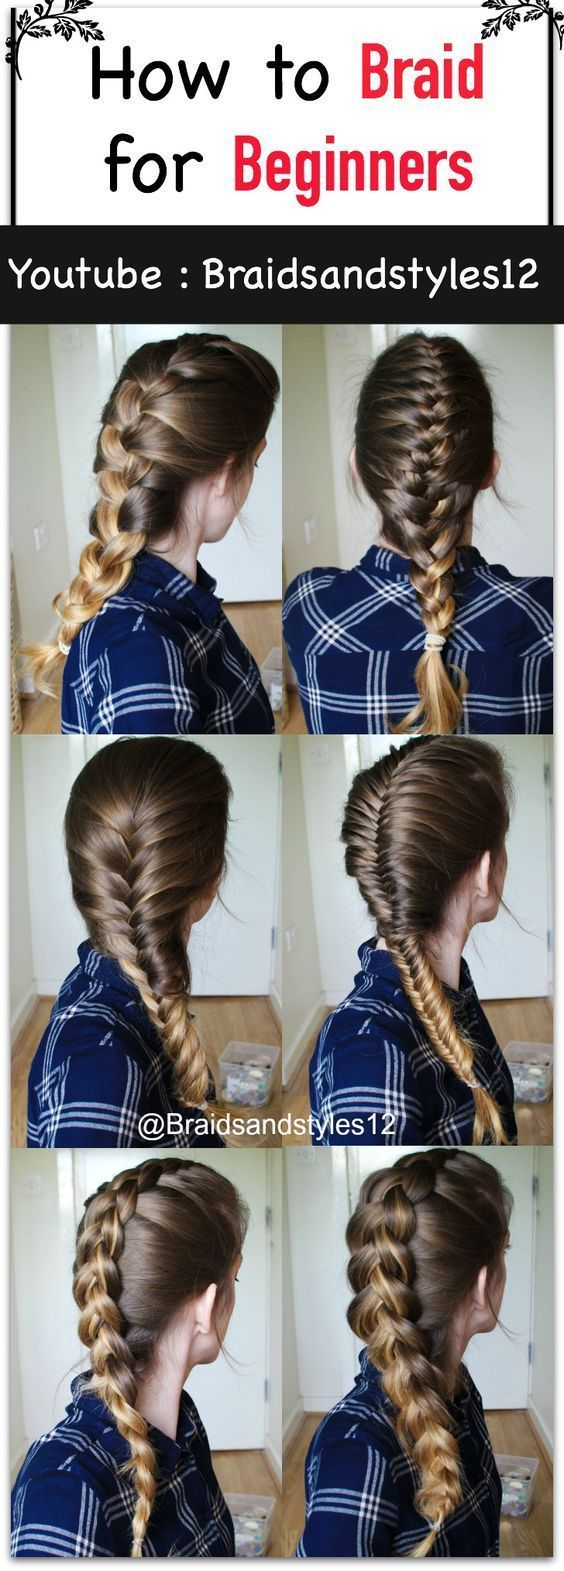 Makeup Ideas: 30 Best Braided Hairstyles That Turn…